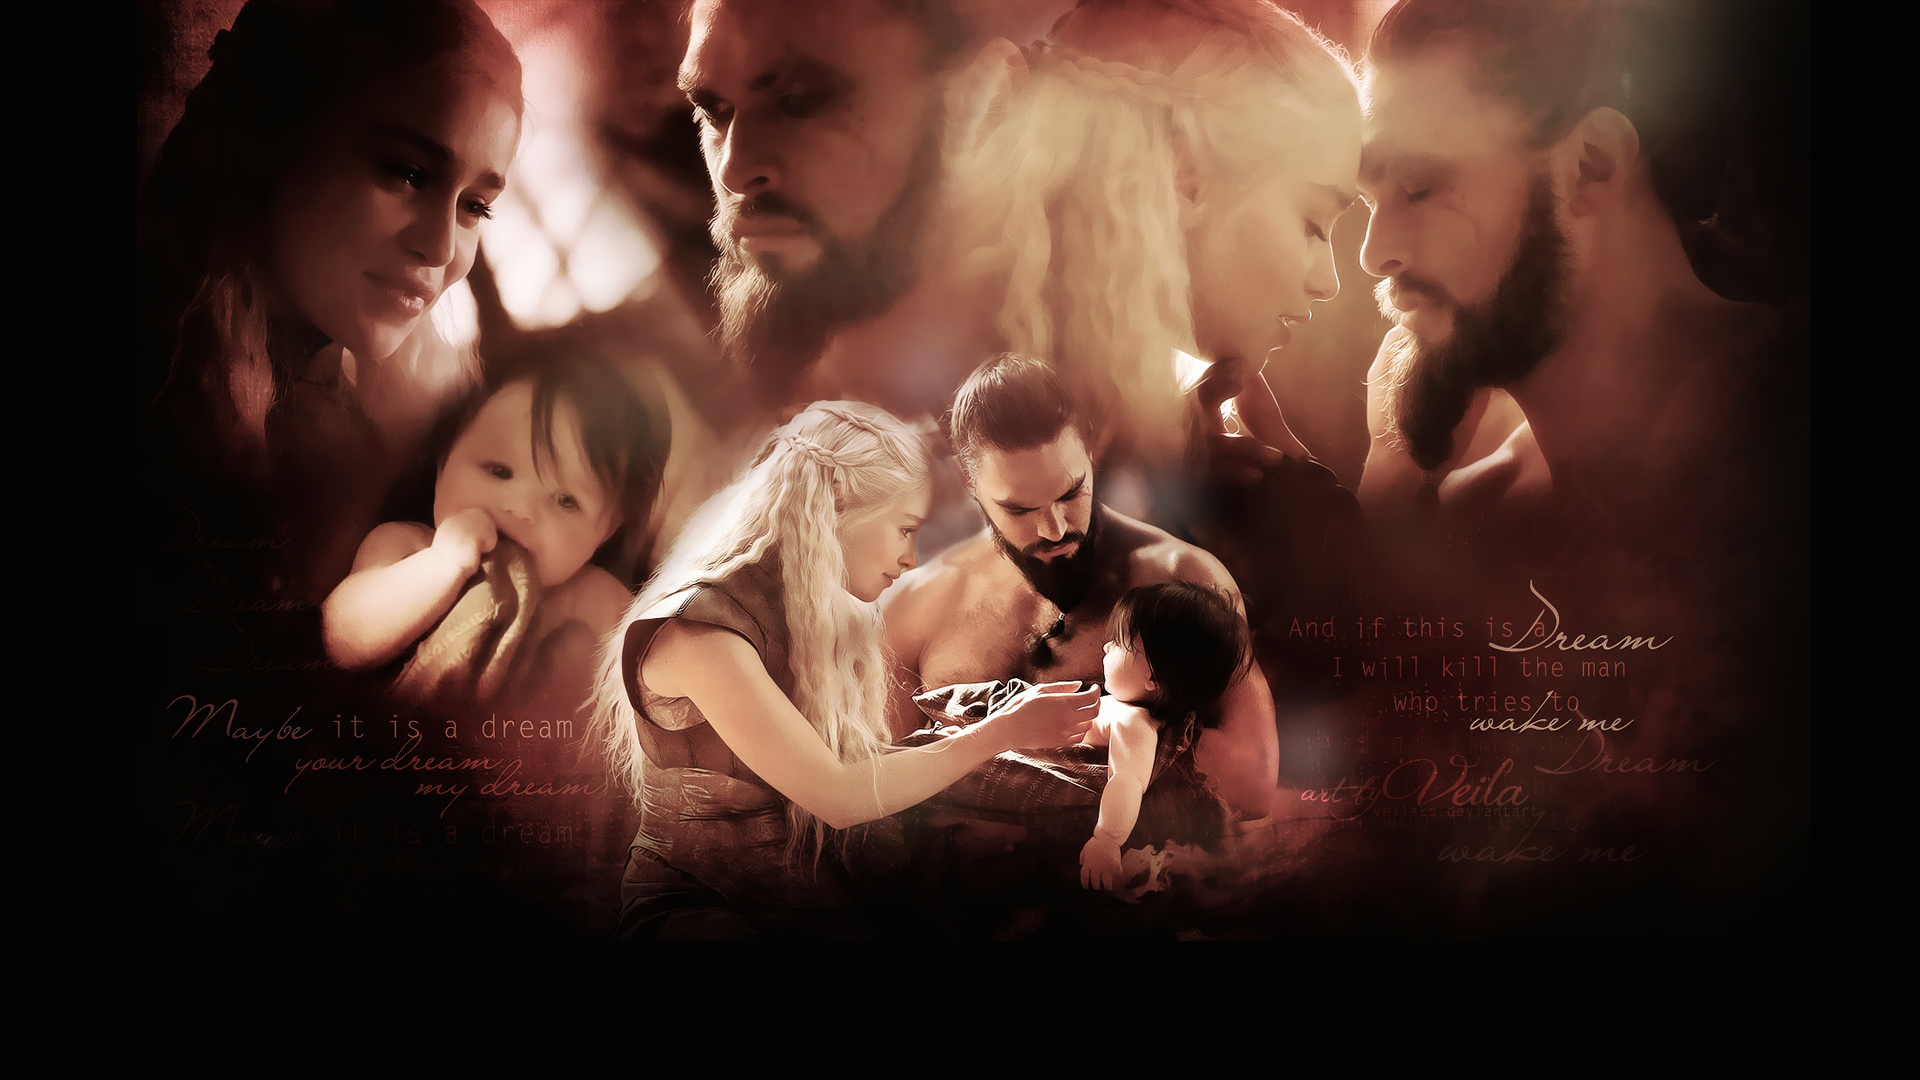 Daenerys Targaryen and Khal Drogo - Game Of Thrones